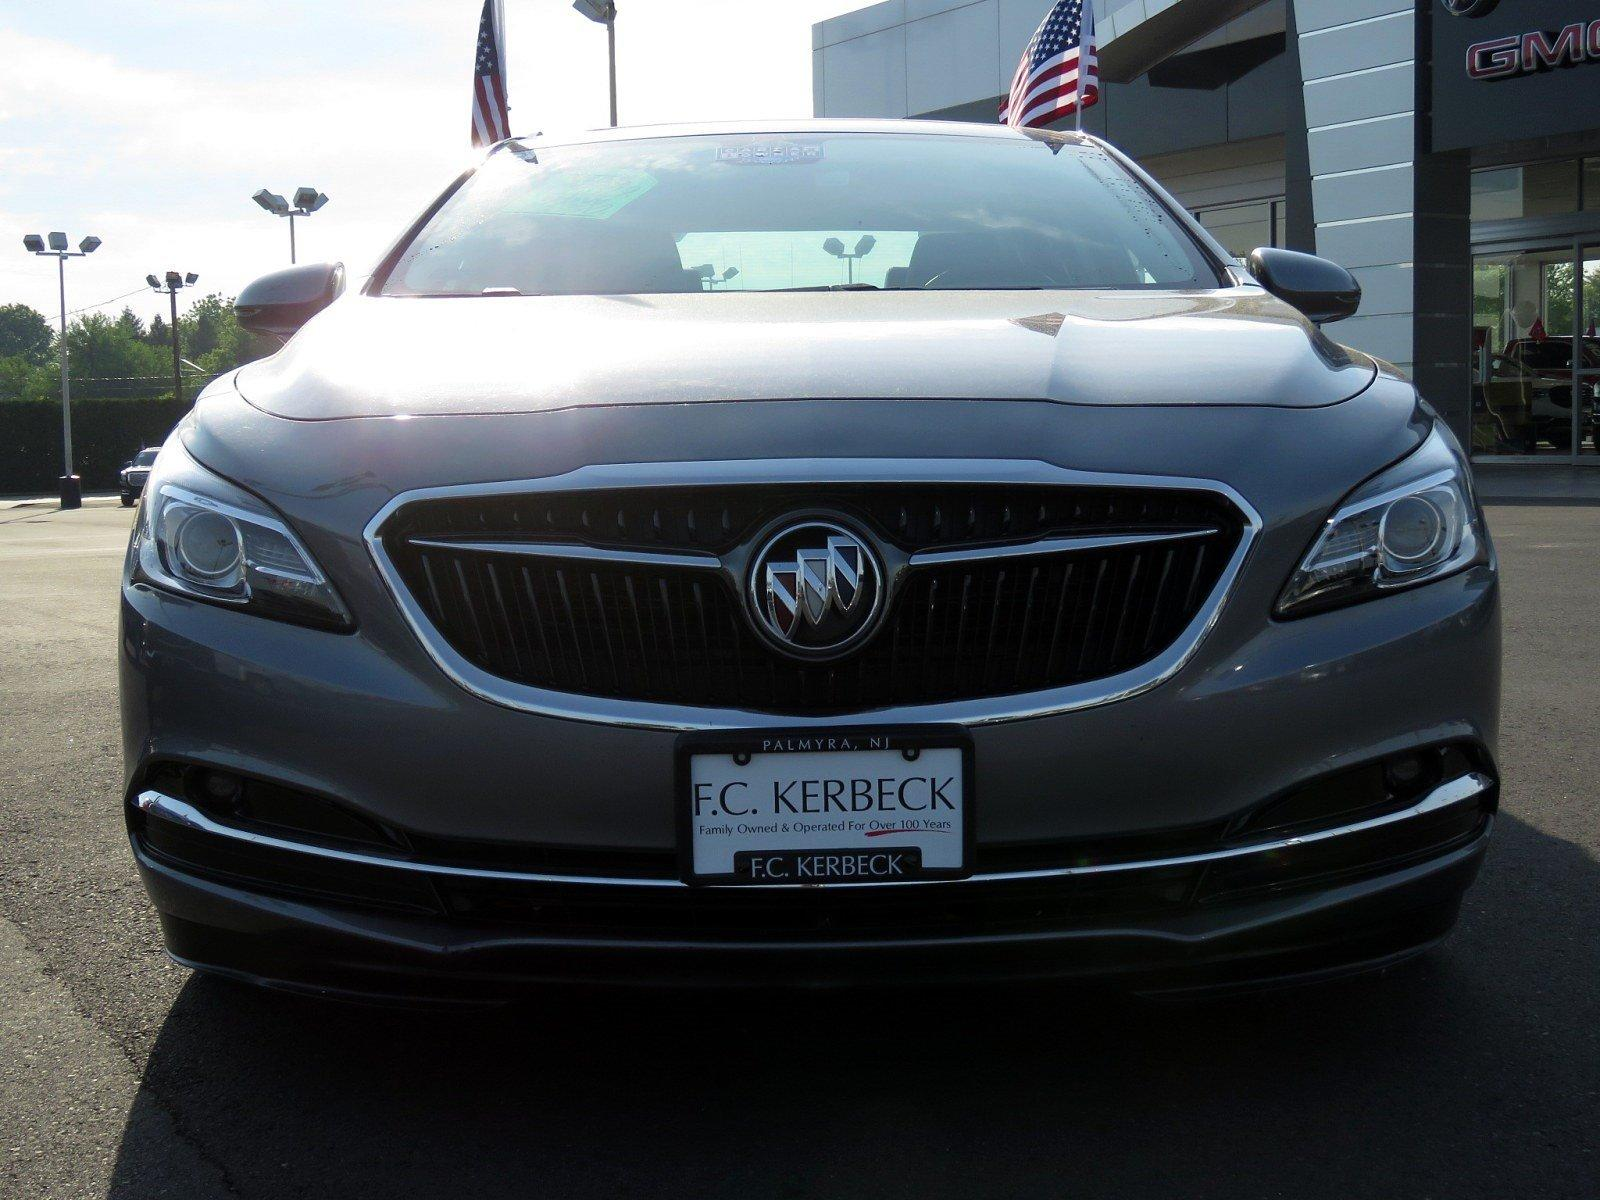 Buick LaCrosse 2018 Satin Steel Metallic For Sale $28329 Stock Number 5967JO